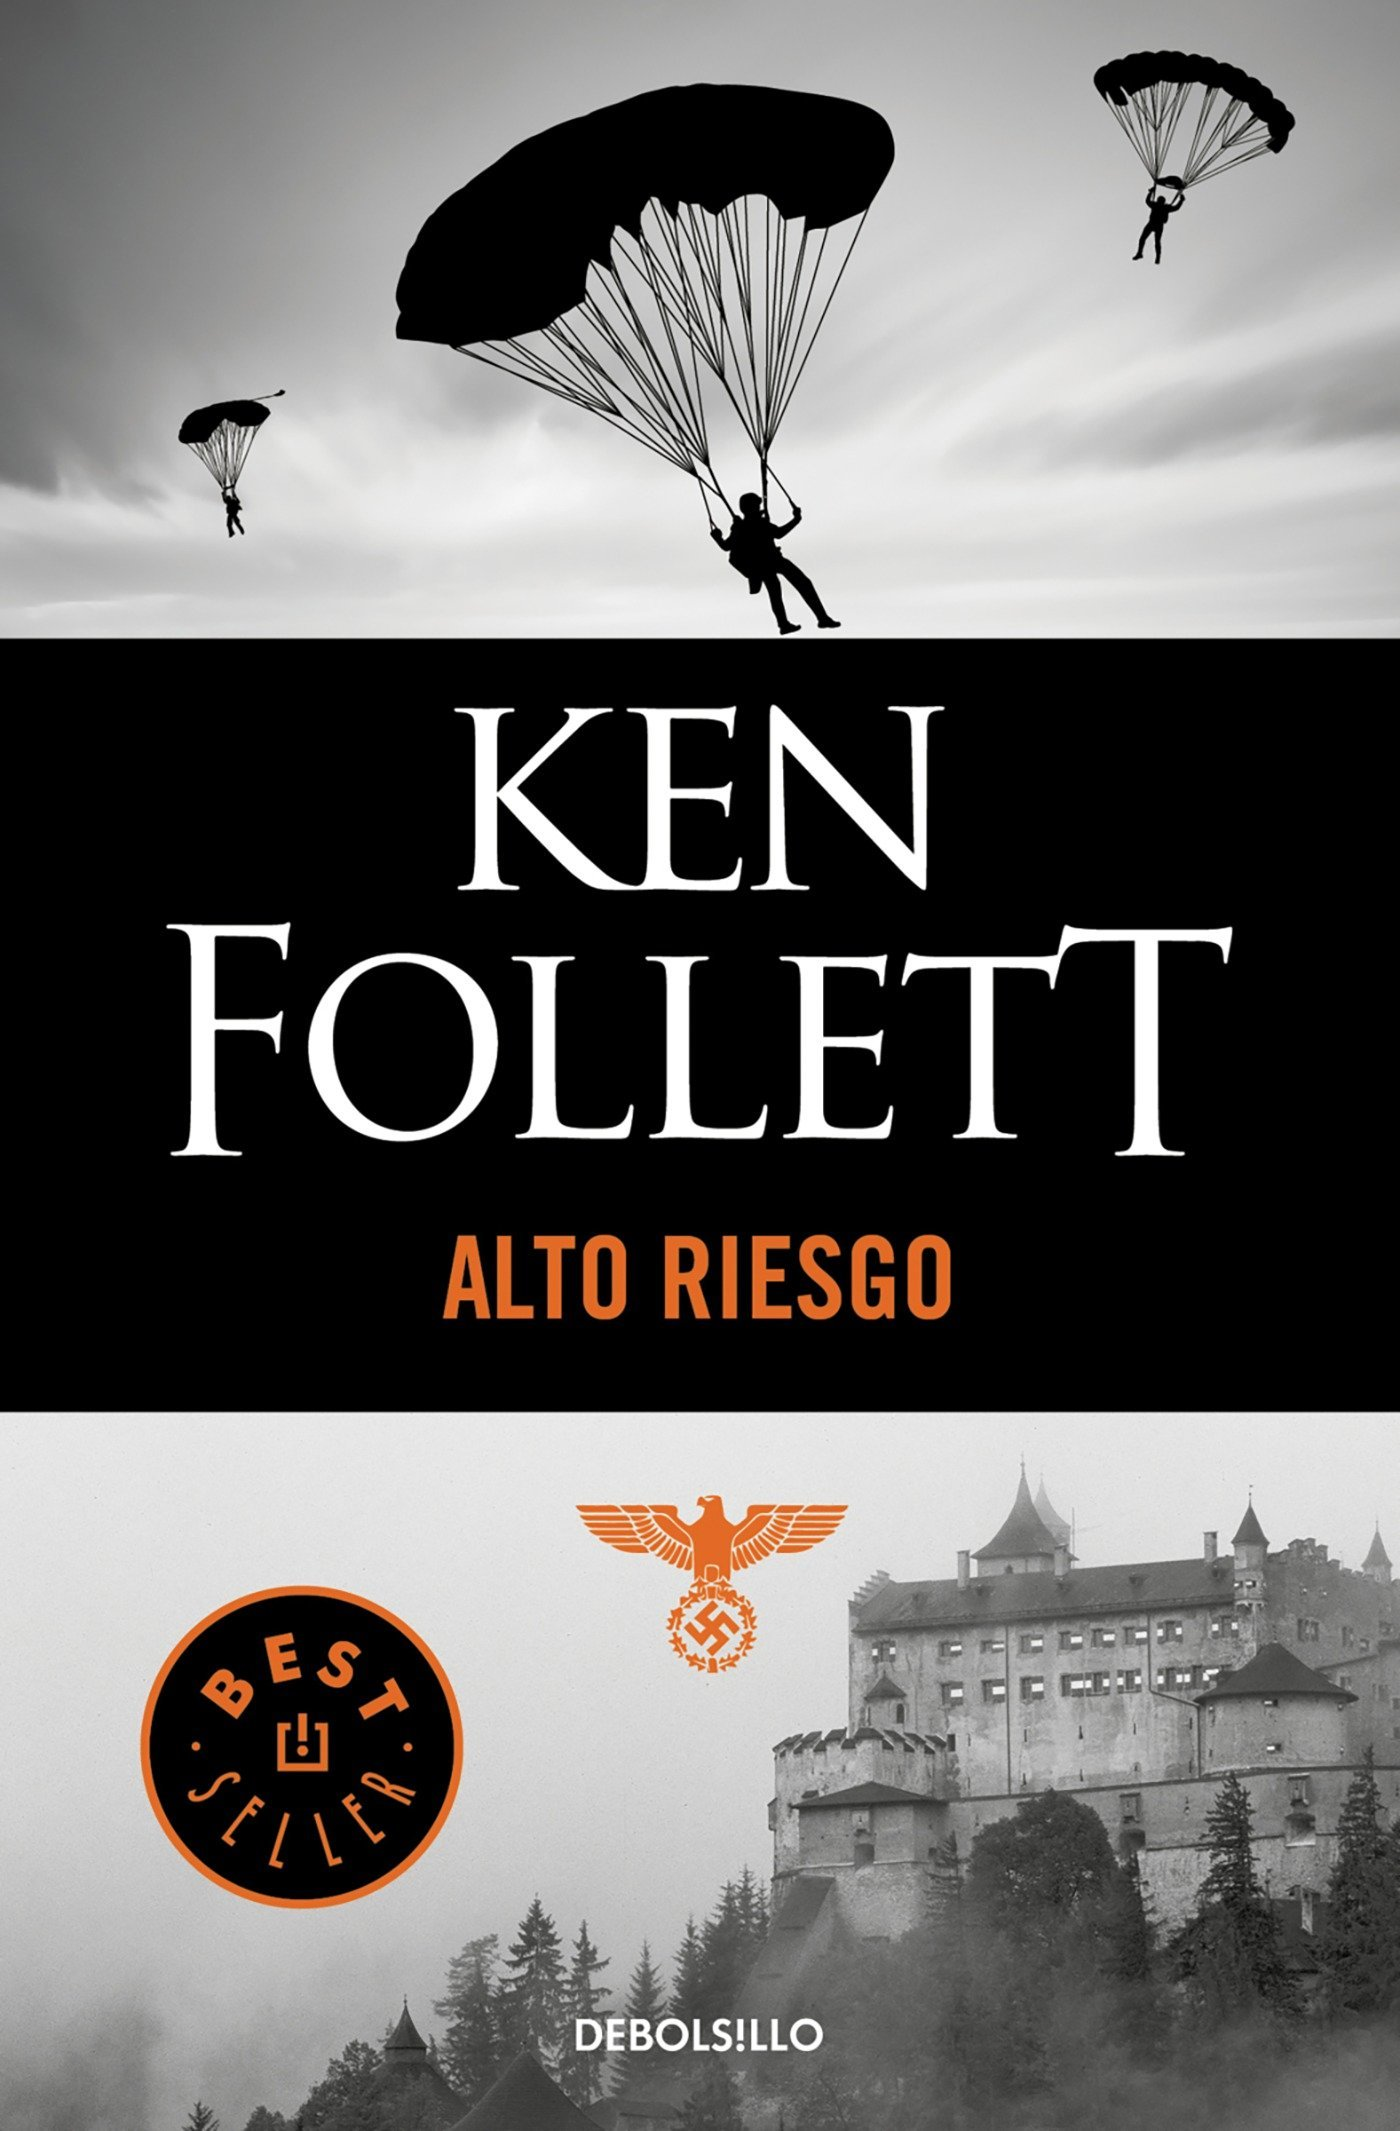 Alto riesgo (BEST SELLER, Band 26200)